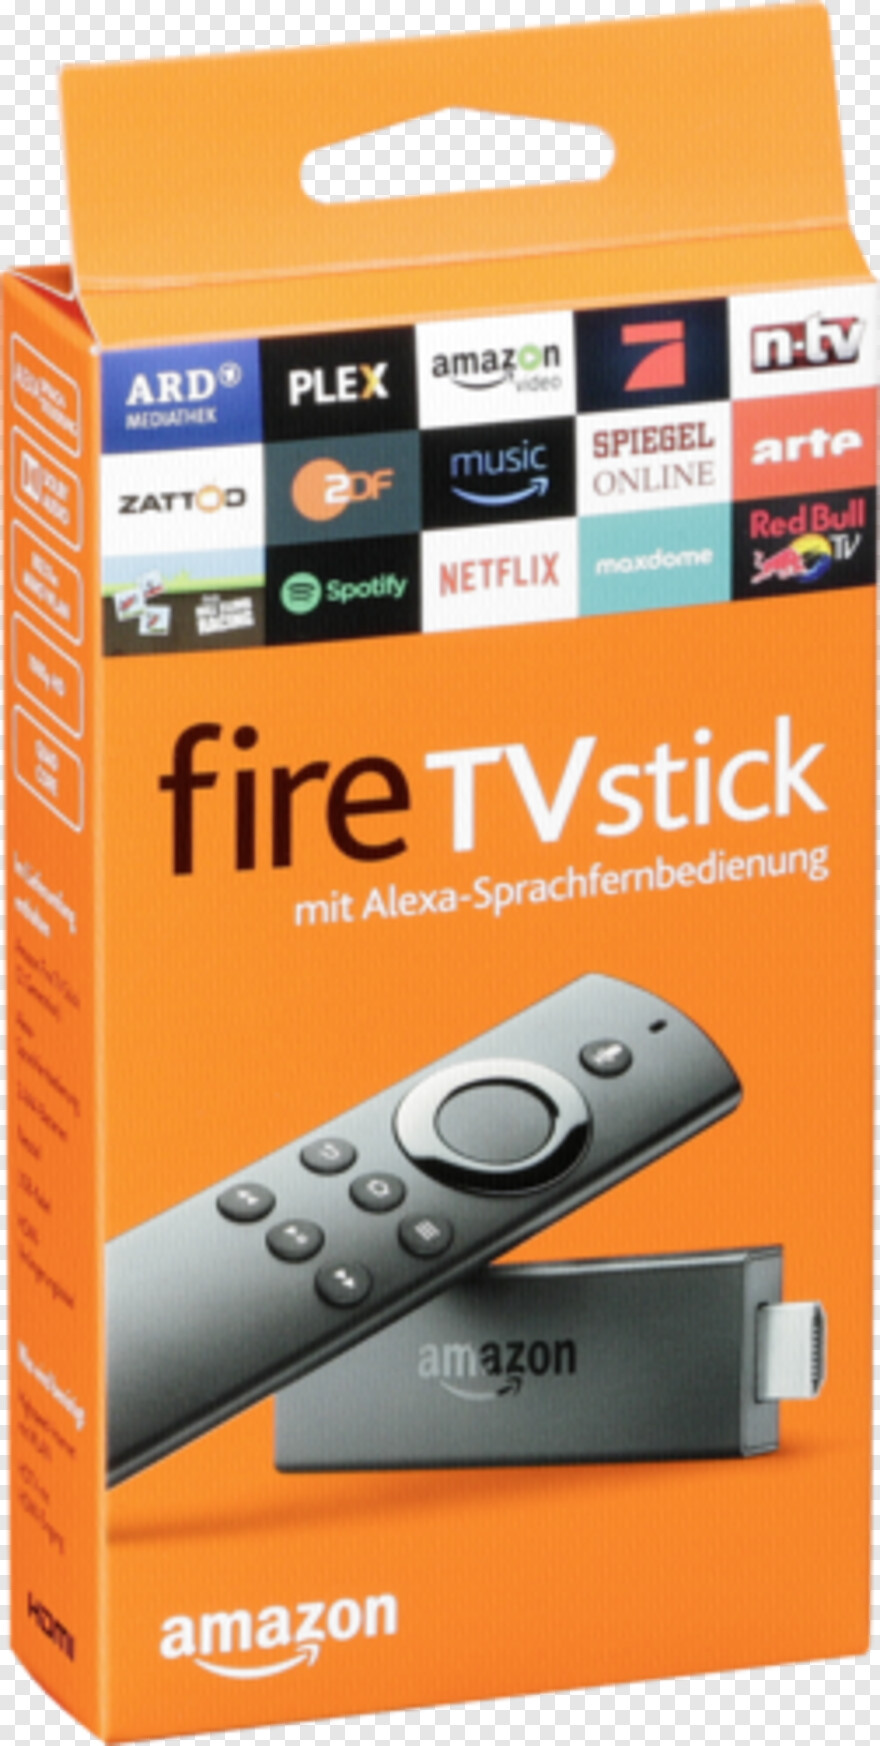 Fire Stick Amazon All New Fire Tv Stick With Alexa Voice Remote Png Download 252x500 7851910 Png Image Pngjoy